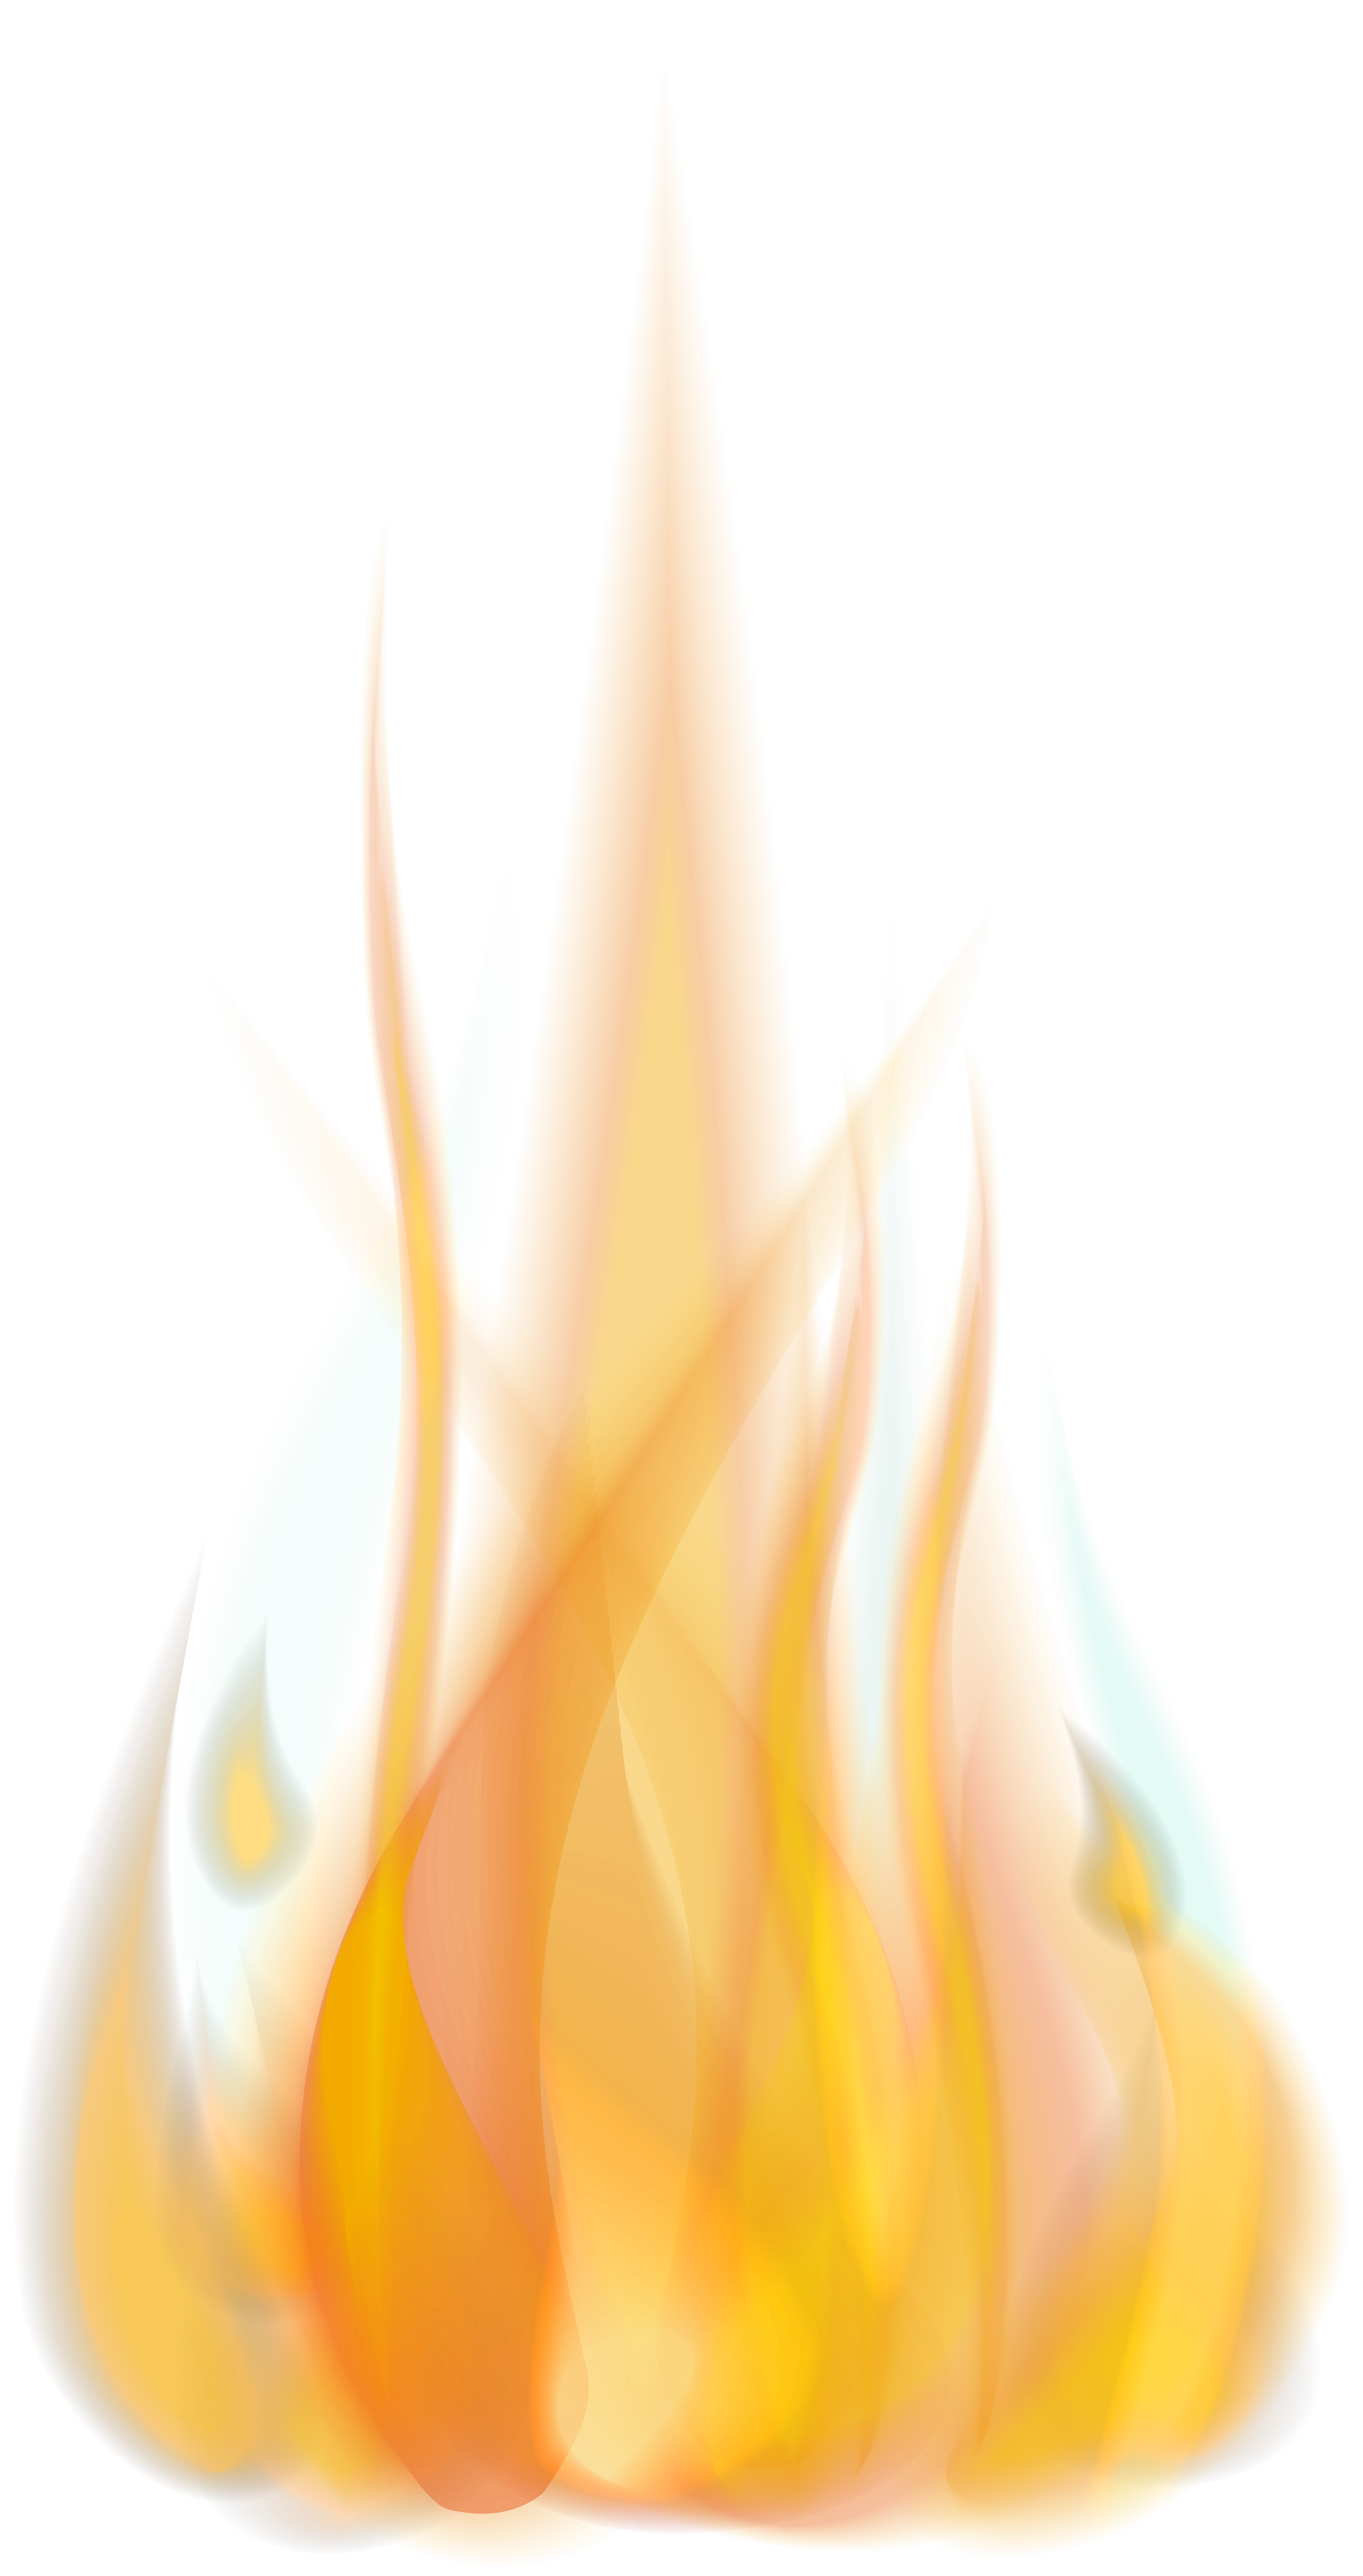 Volleyball clipart flame. Fire png clip art